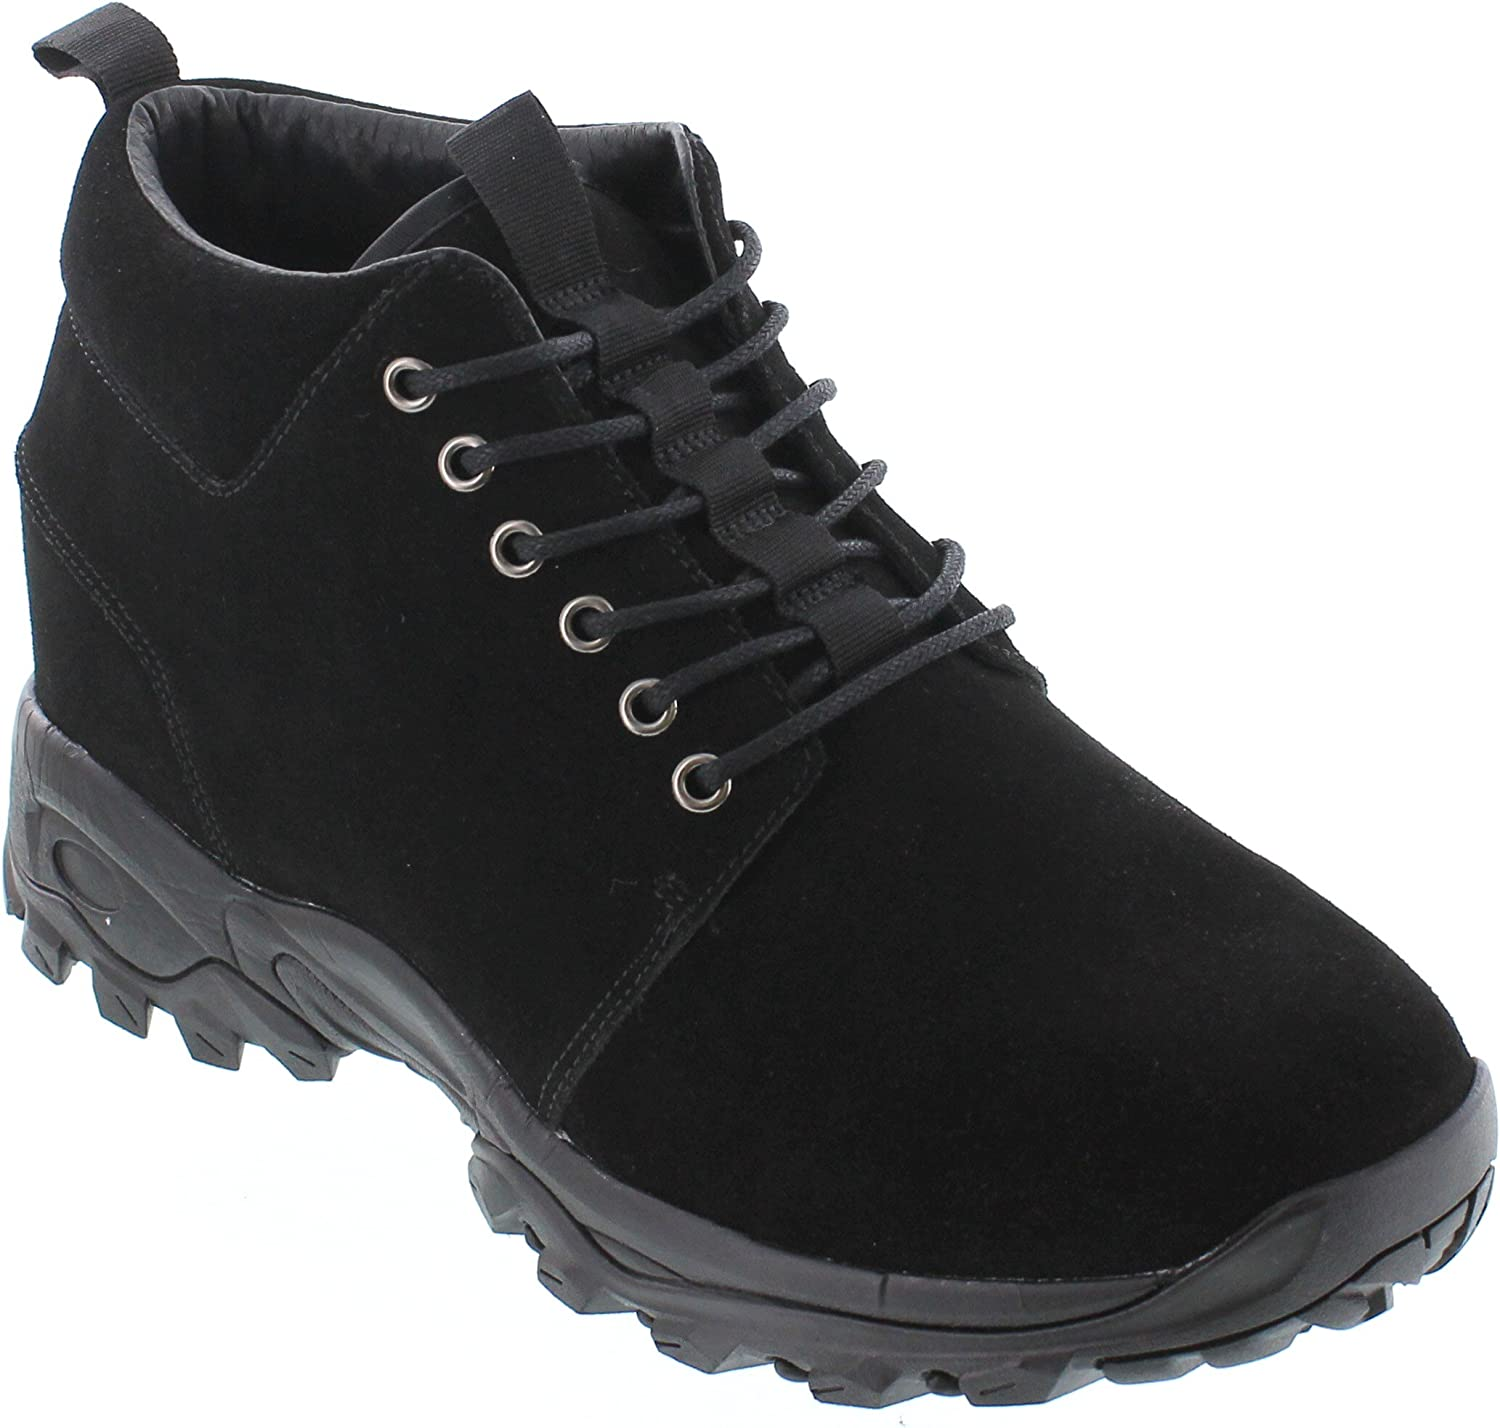 CALTO Men's Invisible Height Increasing Elevator shoes - Black Suede Lace-up Hiking Boots - 3.2 Inches Taller - H7222